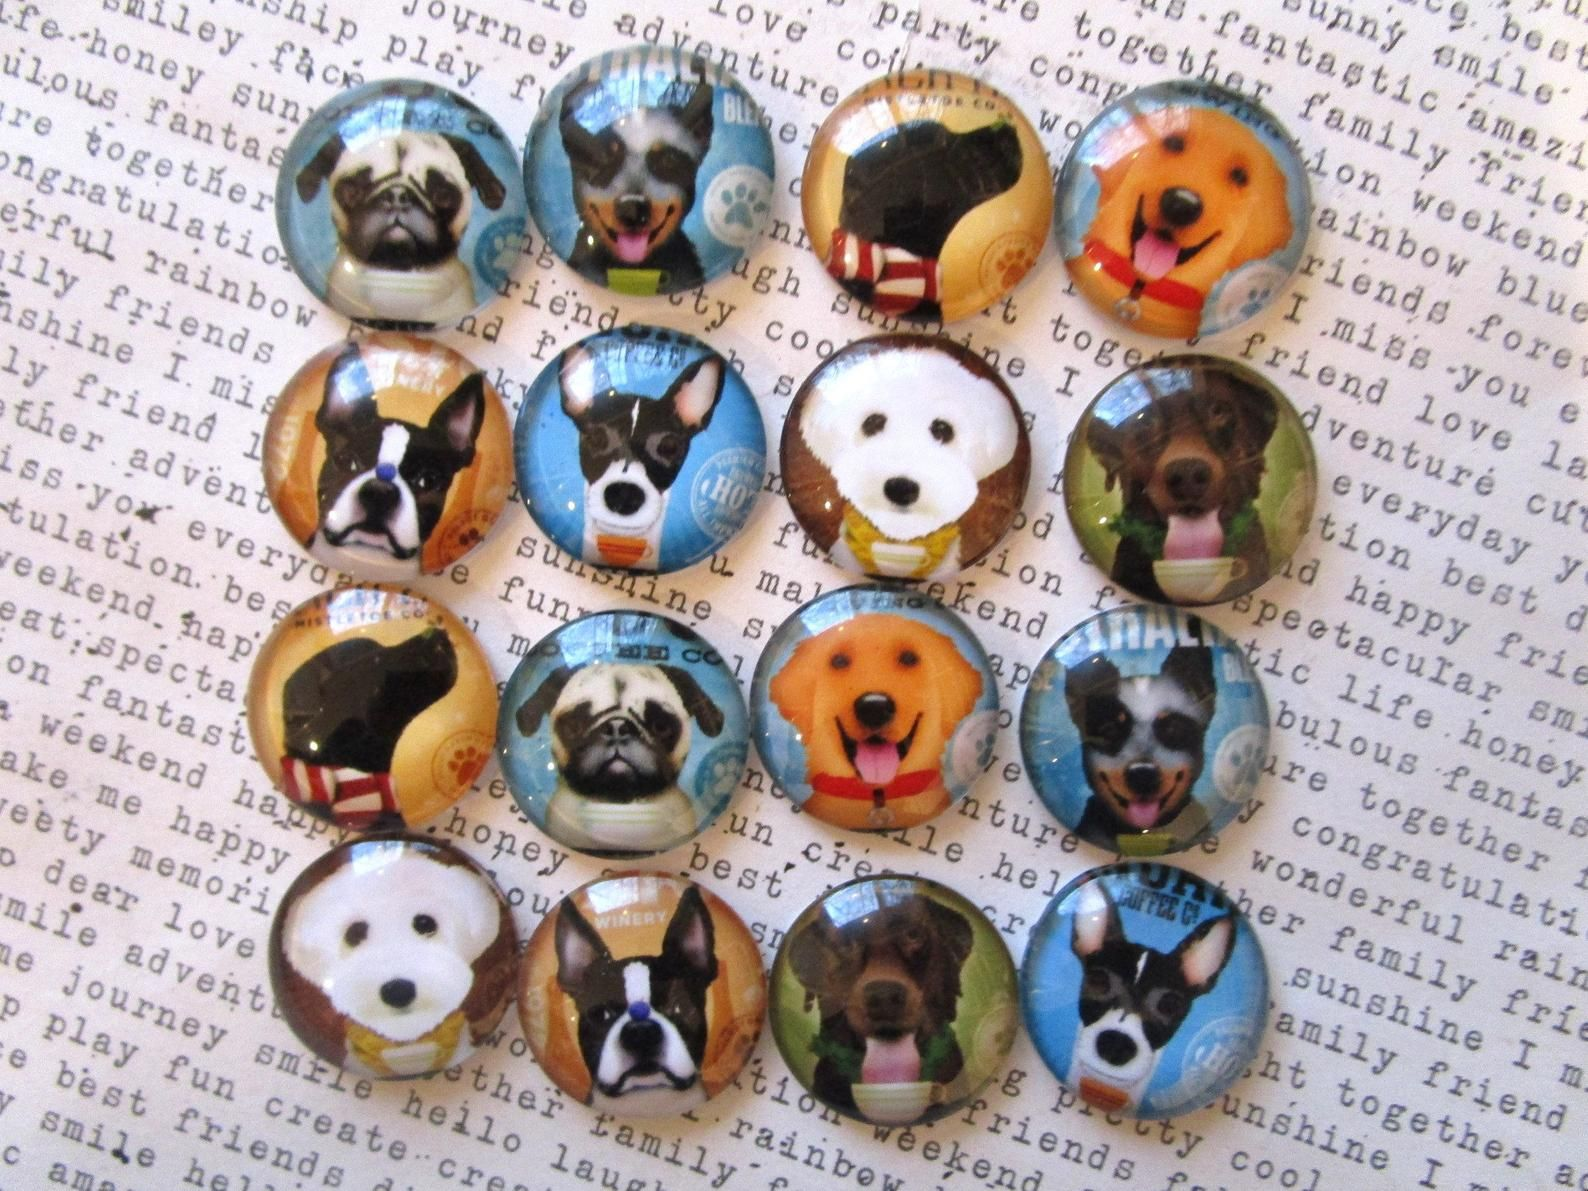 Fun Dog Magnets 6 To 12 Strong Fridge Magnets 3 4 Dog Magnets Holiday Stocking Stuffer Glass Magnets